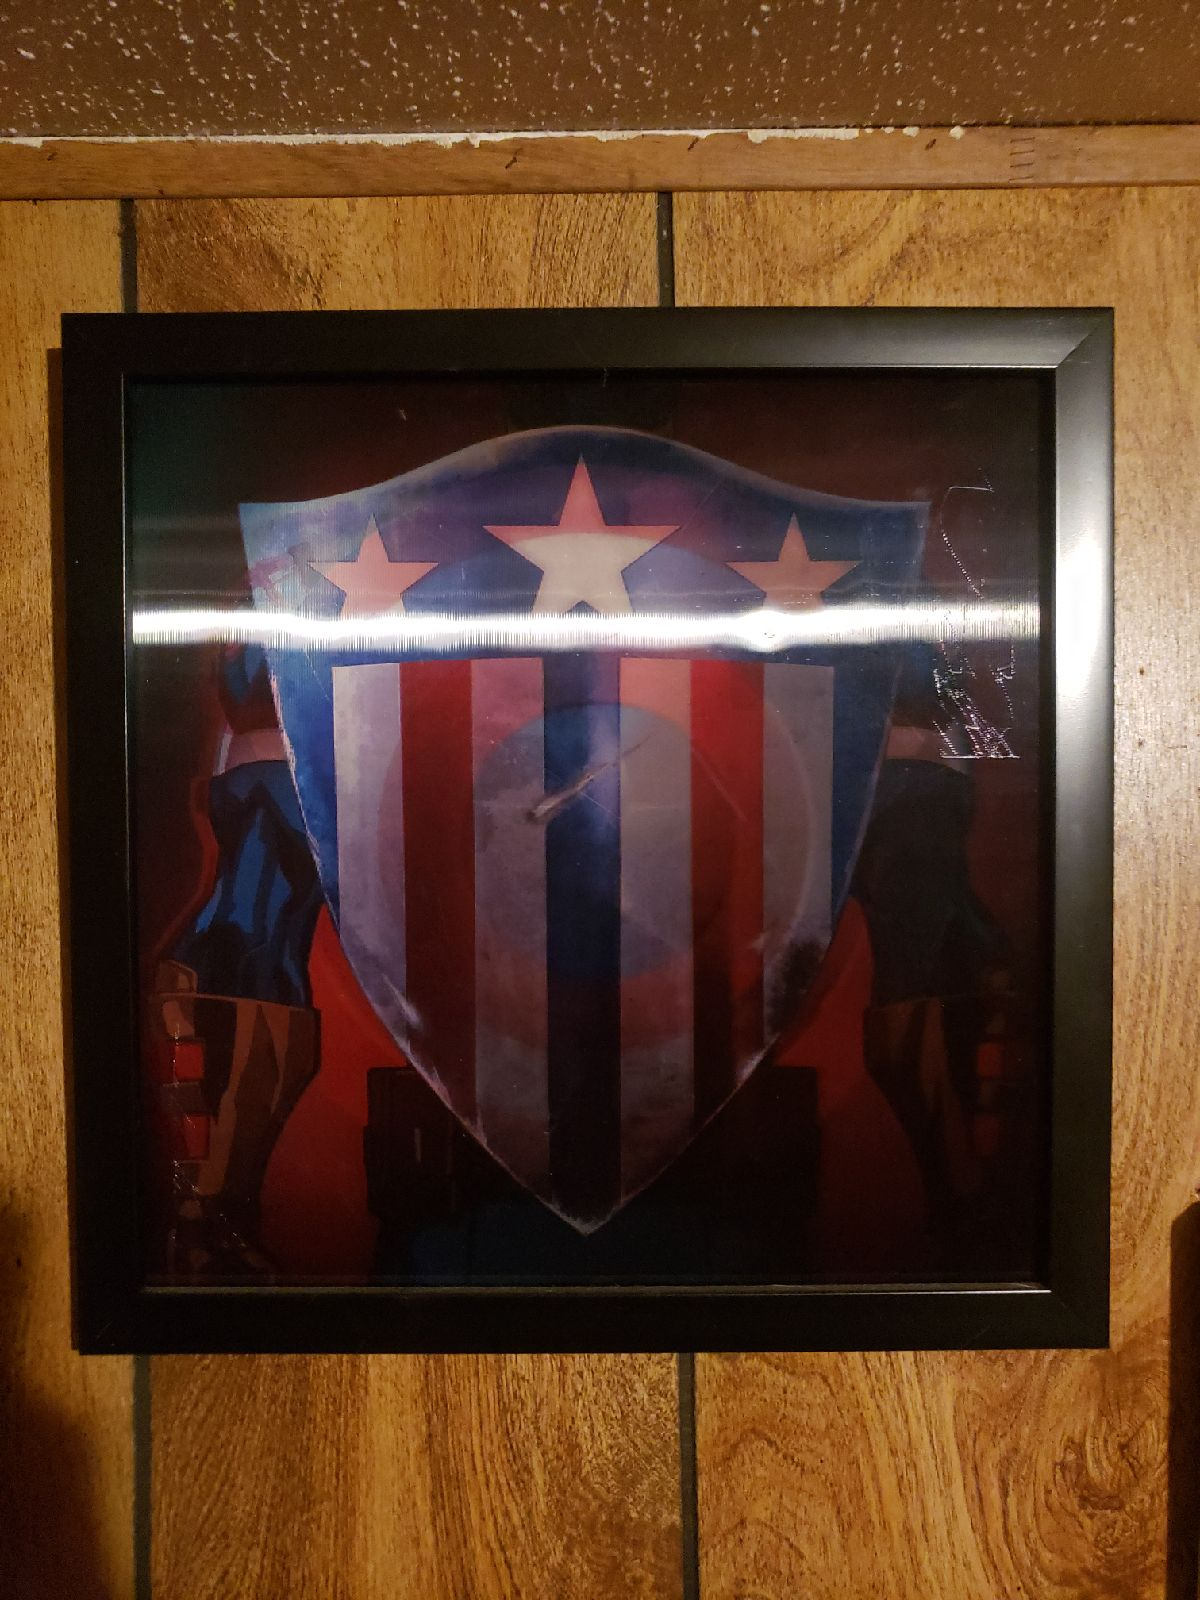 Holligraphic captain america picture